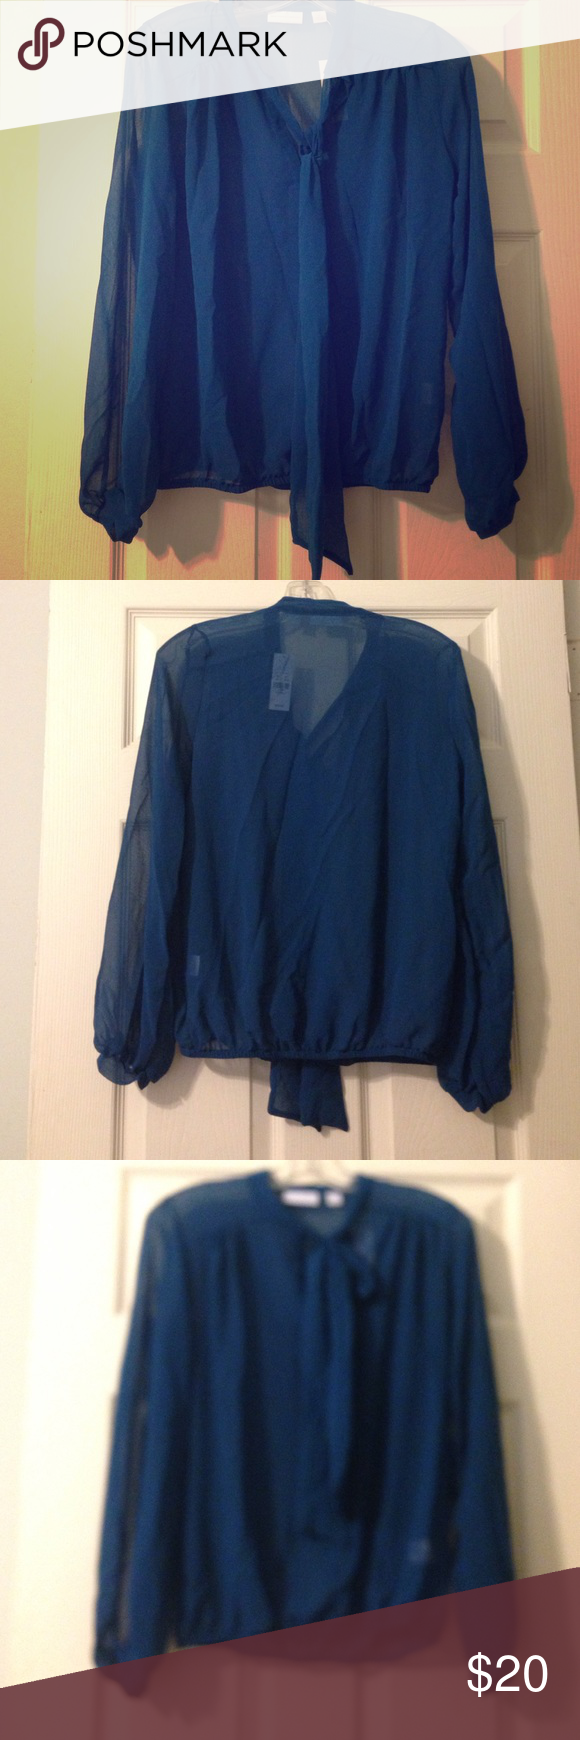 NWT Sheer Blouse Sheer blouse from New York and Company. Perfect for work or semi-formal events. Dress it down with flats and it's perfect for daytime. Size XS, but is meant to be loose. Can fit up to a Medium comfortably ☀️✌️ New York & Company Tops Blouses